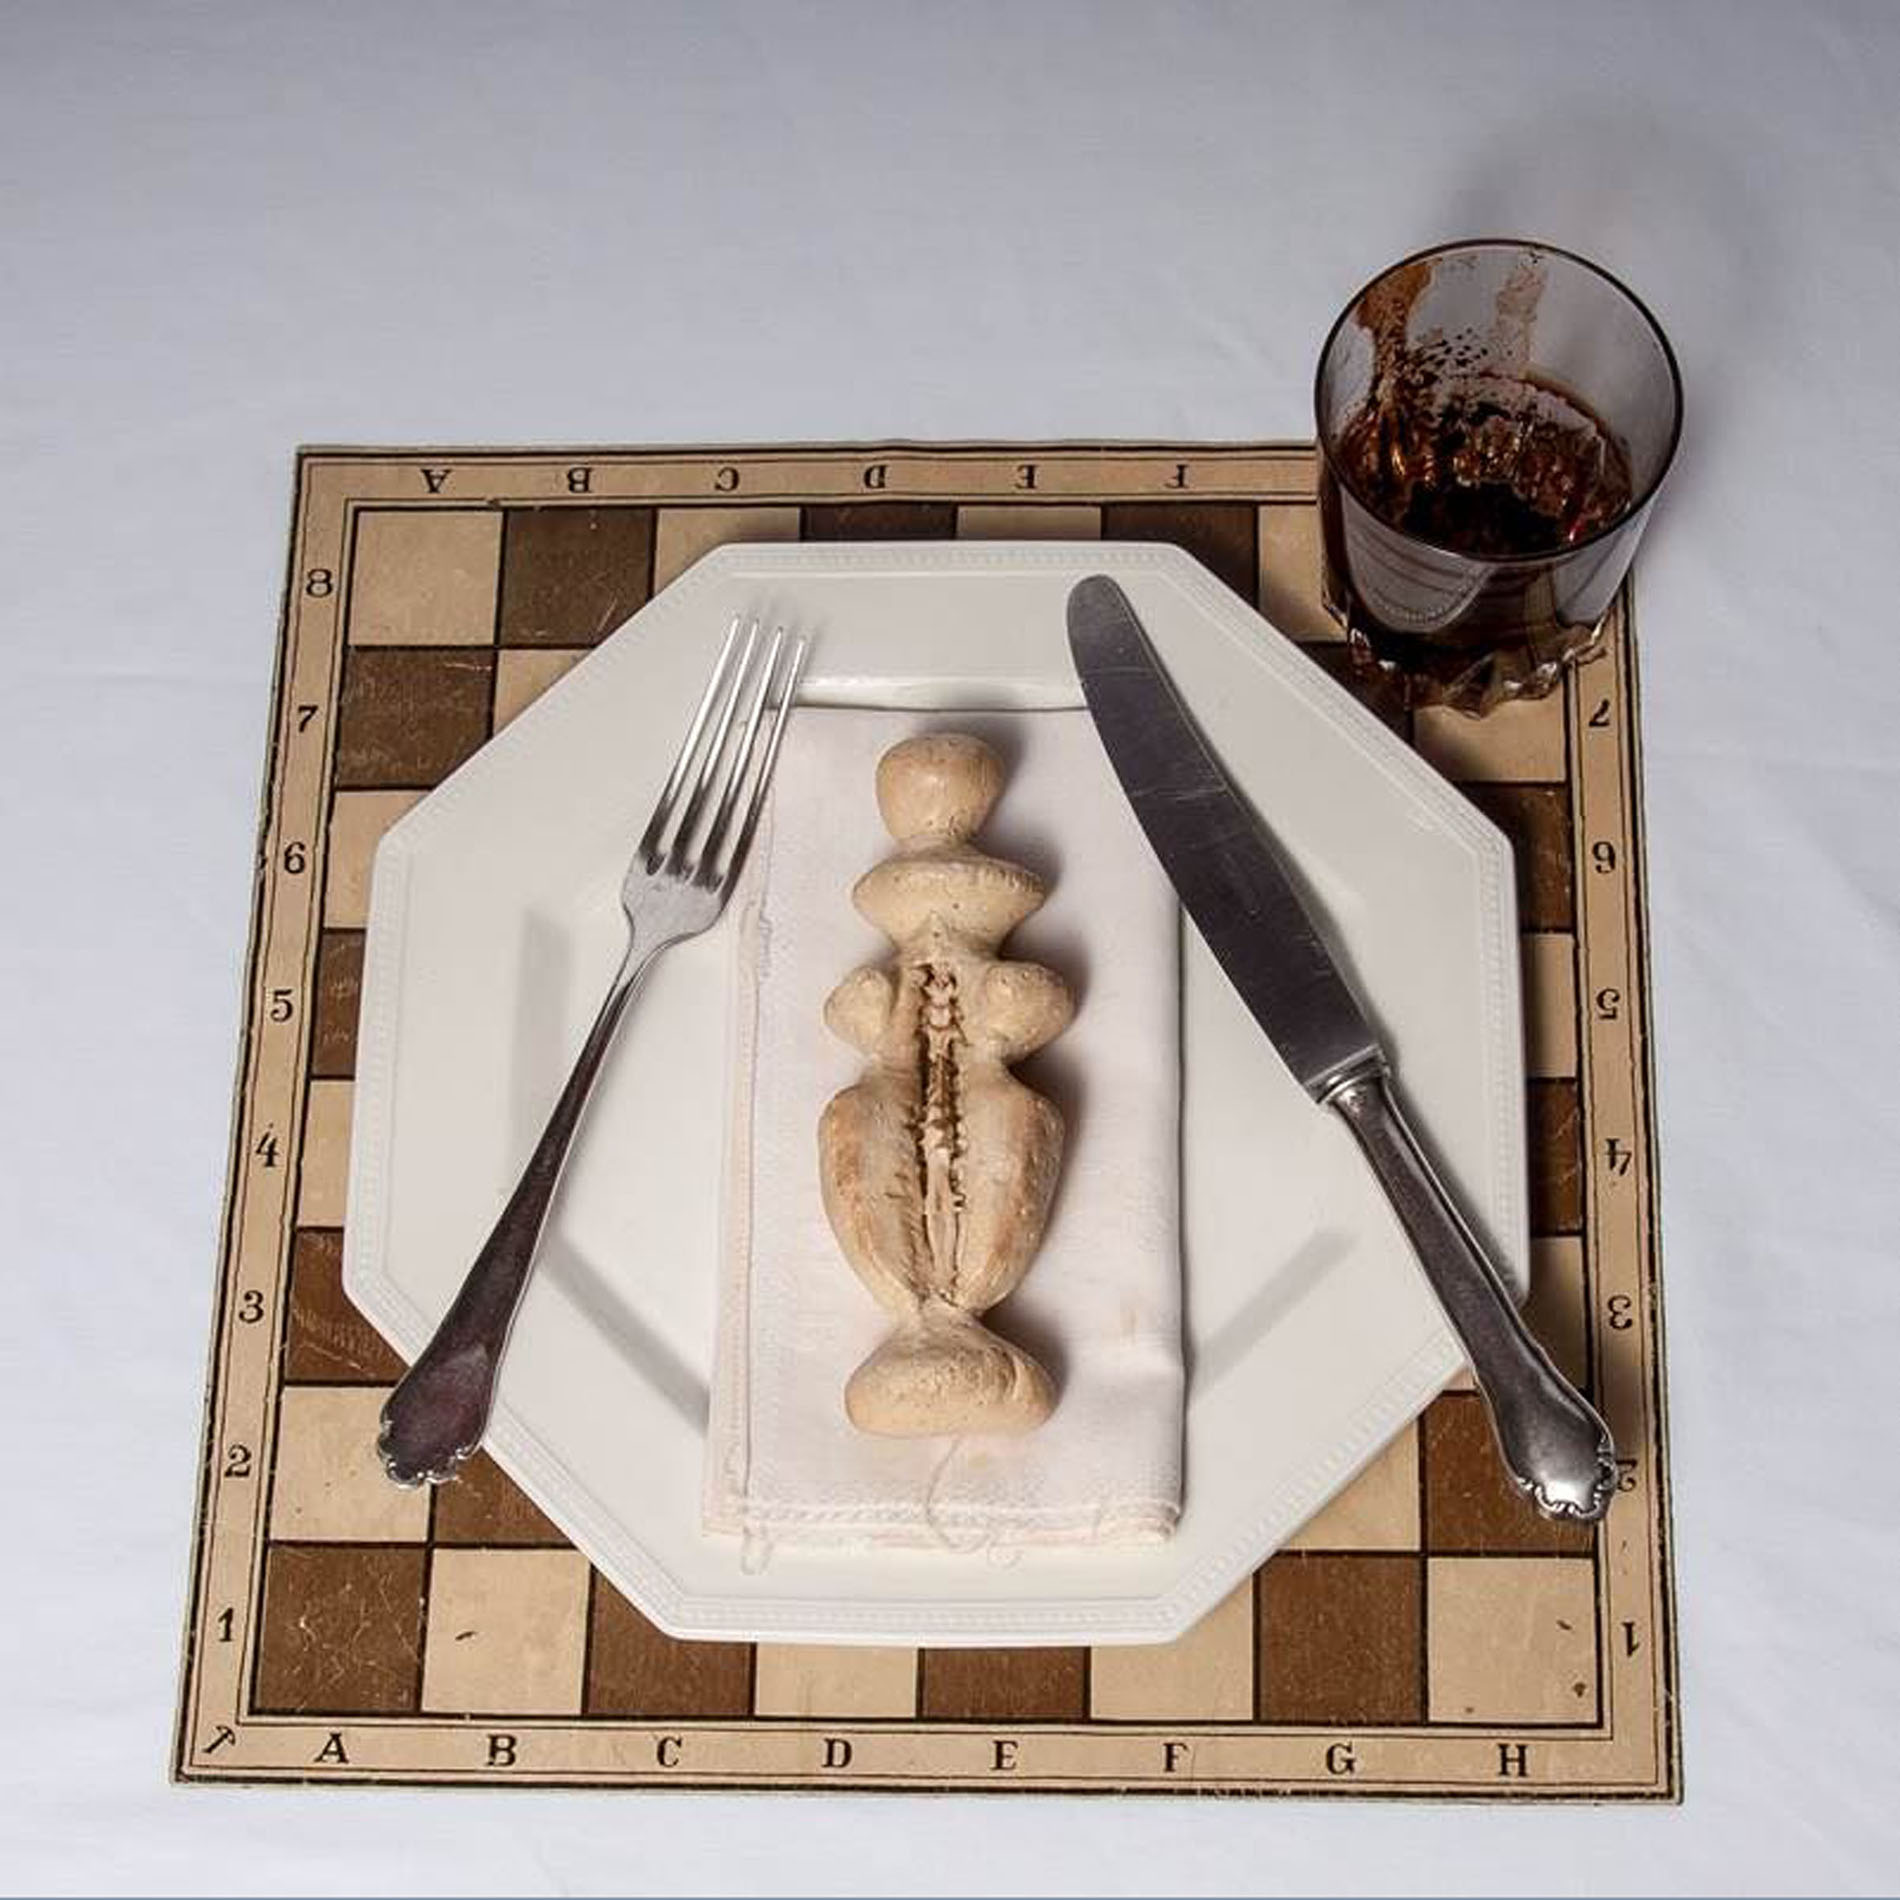 Meret Oppenheim, Bon Appetit, Marcel (The White Queen), 1966, Mixed Media, 32 x 32 x 10 cm, Privatsammlung